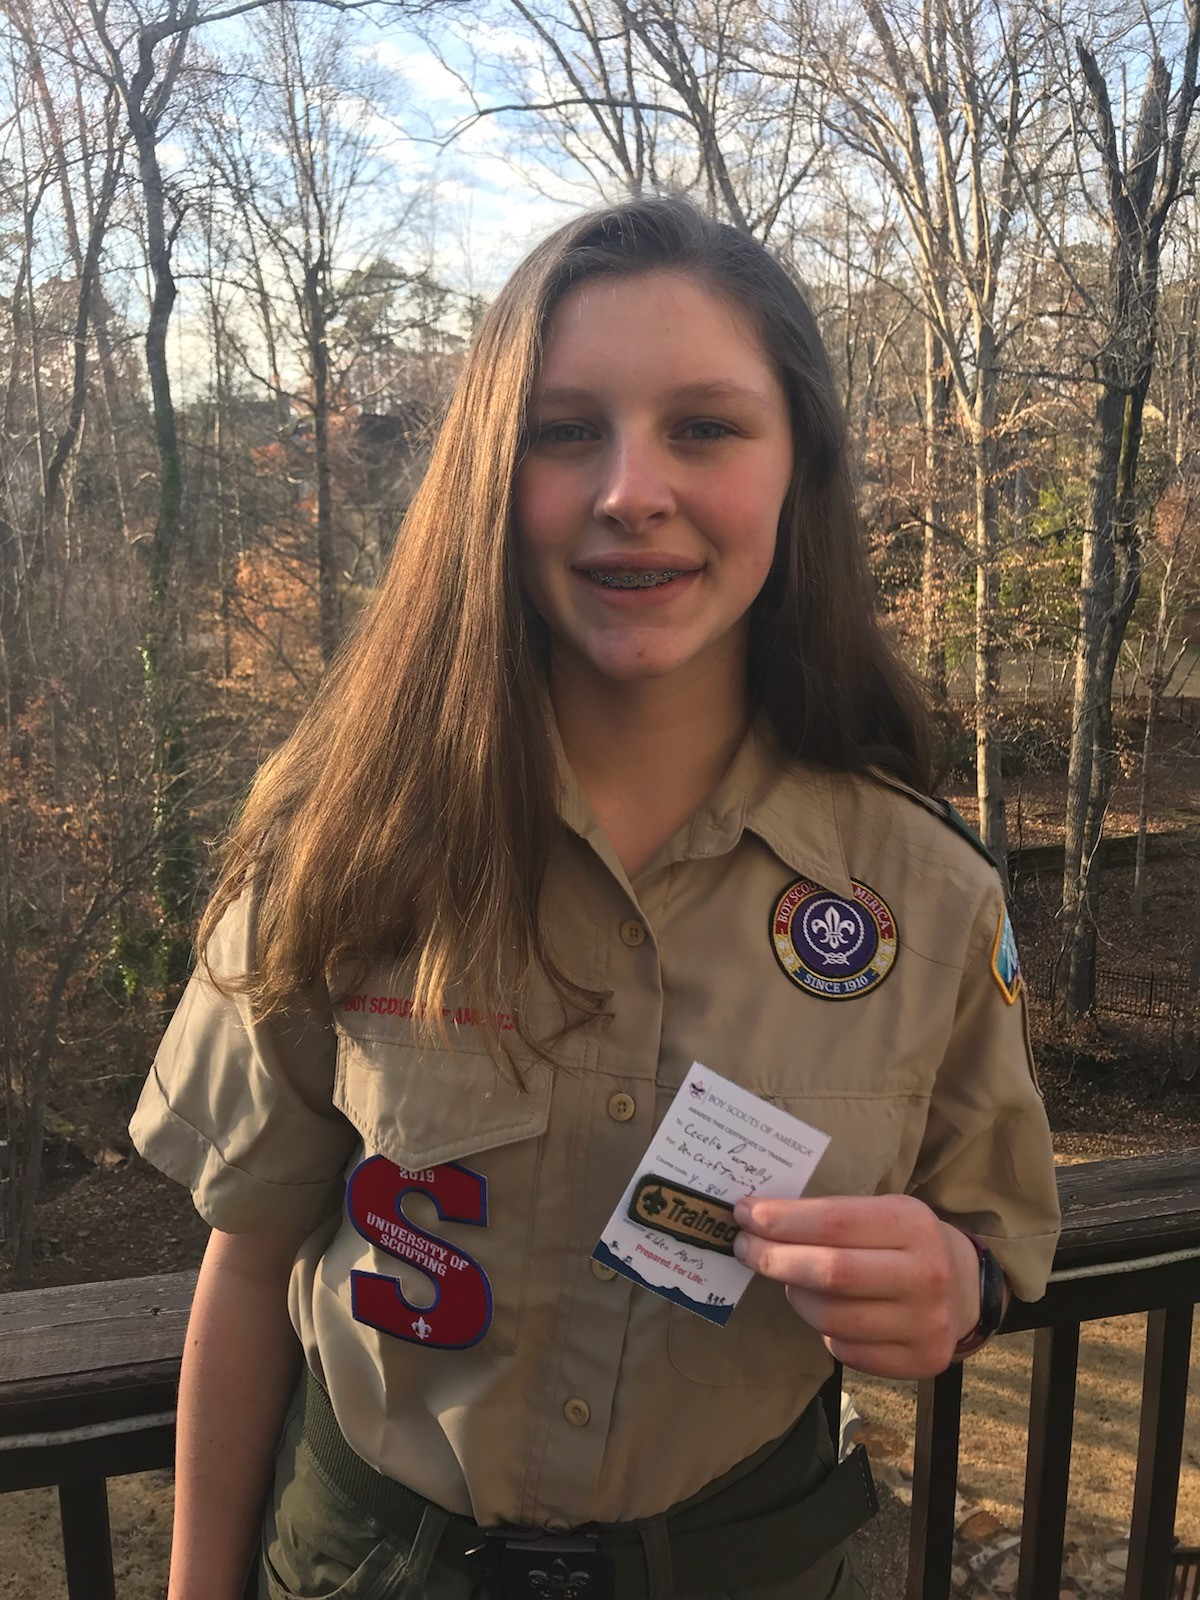 Cecilia holding her 'Trained' Scouting badge.